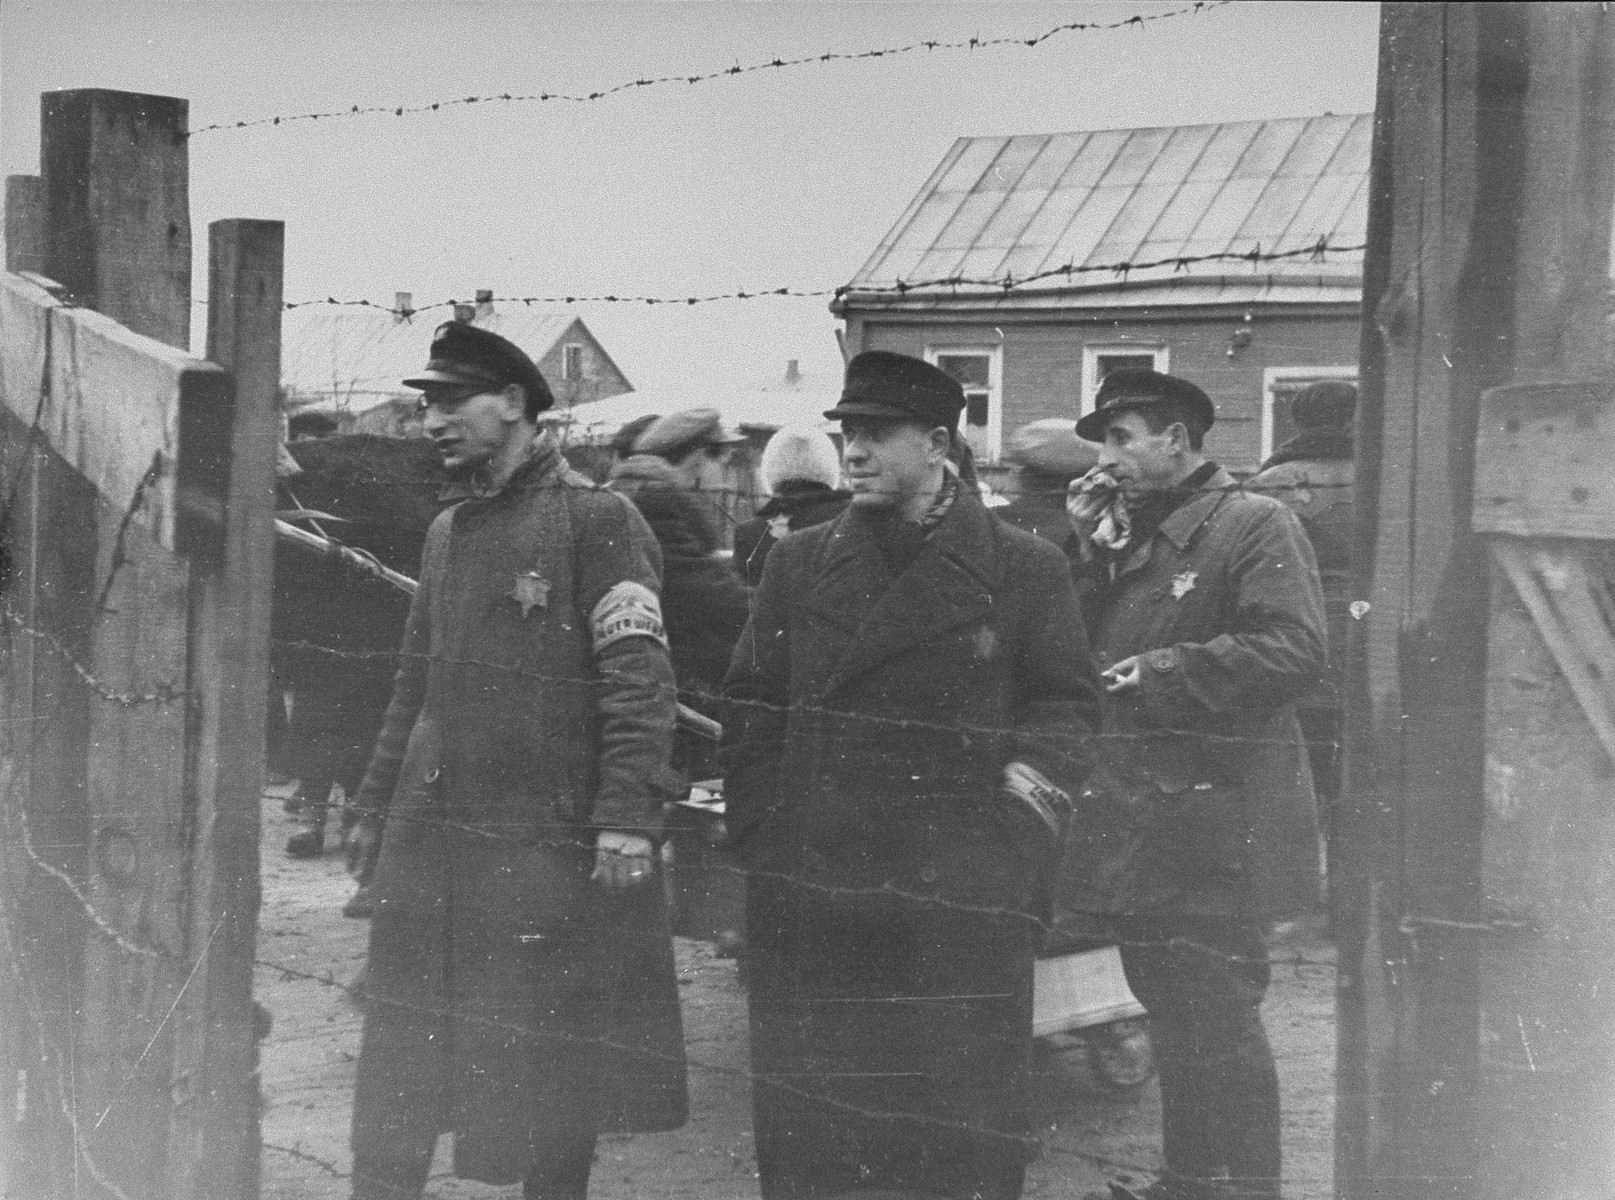 Three Jewish ghetto officials stand at one of the gates to the Kovno ghetto.   Pictured are Pavel Margolis (center), head of recruitment at the Jewish labor office in the ghetto, Yankel Kaplan (far right), a member of the ghetto fire brigade  .